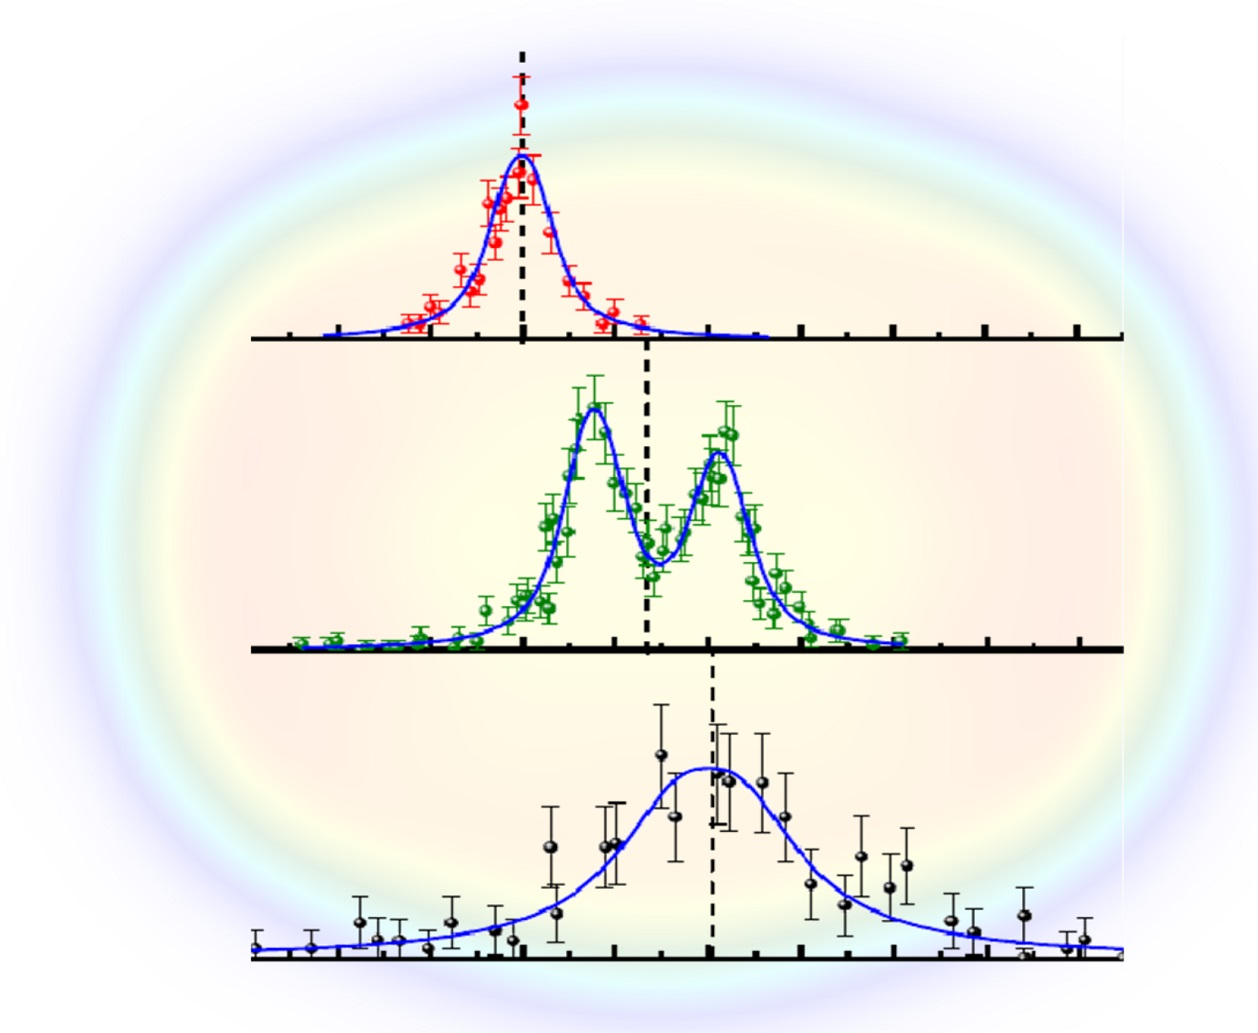 The experimental spectra from the laser spectroscopy of the three nobelium isotopes are shown in front of the calculated charge density distribution of No-254